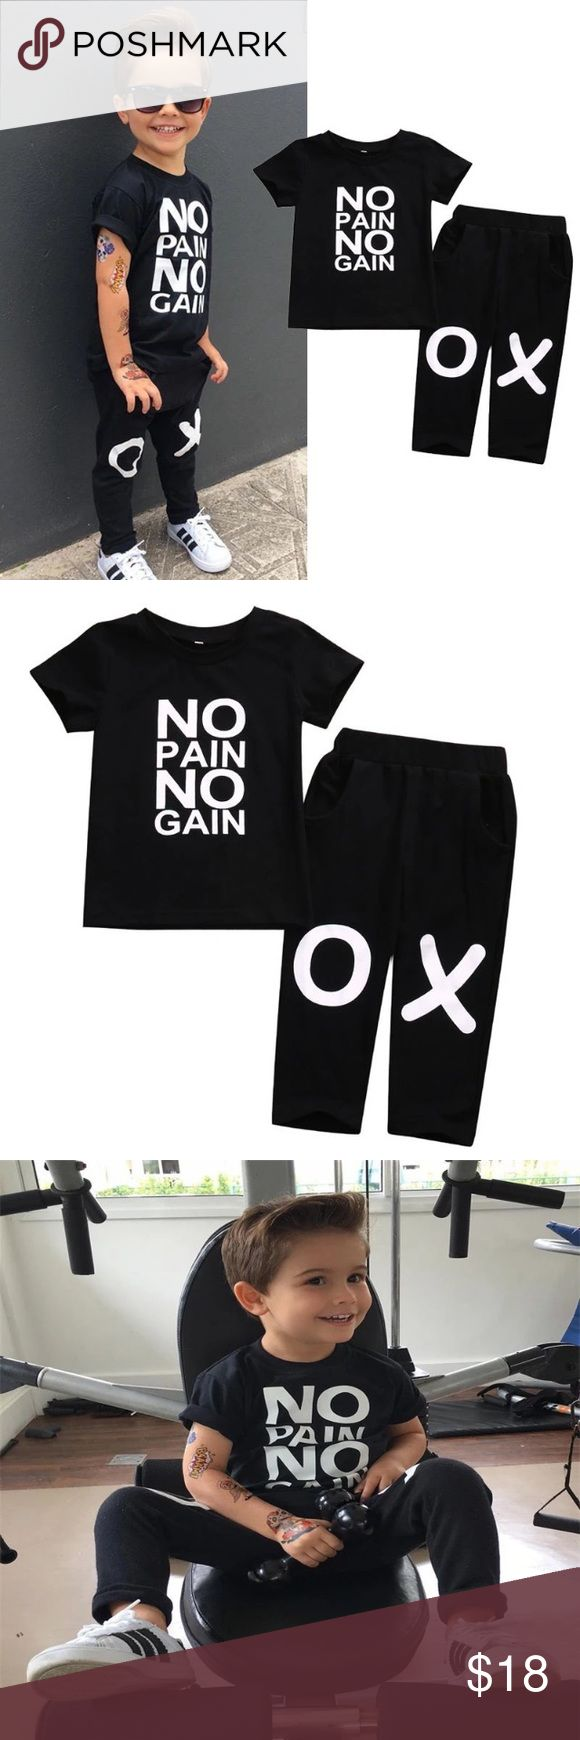 Boutique Unisex NO PAIN NO GAIN 2pc set Adorable gender neutral black short sleeve top with white NO PAIN NO GAIN across the front. Black pants have X & O on knees. Matching Sets